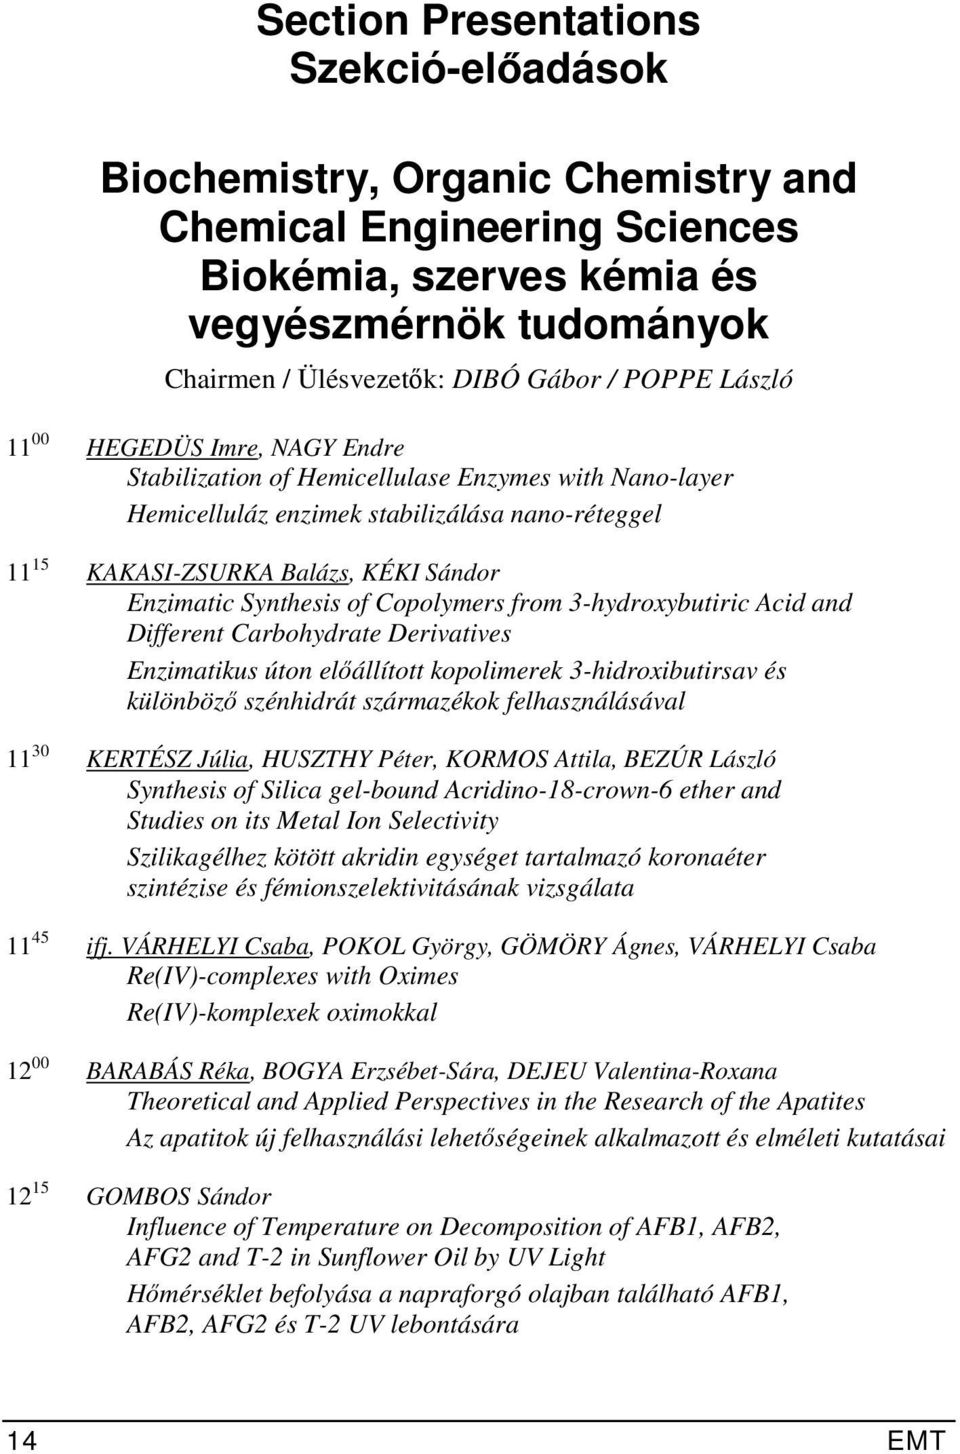 Synthesis of Copolymers from 3-hydroxybutiric Acid and Different Carbohydrate Derivatives Enzimatikus úton előállított kopolimerek 3-hidroxibutirsav és különböző szénhidrát származékok